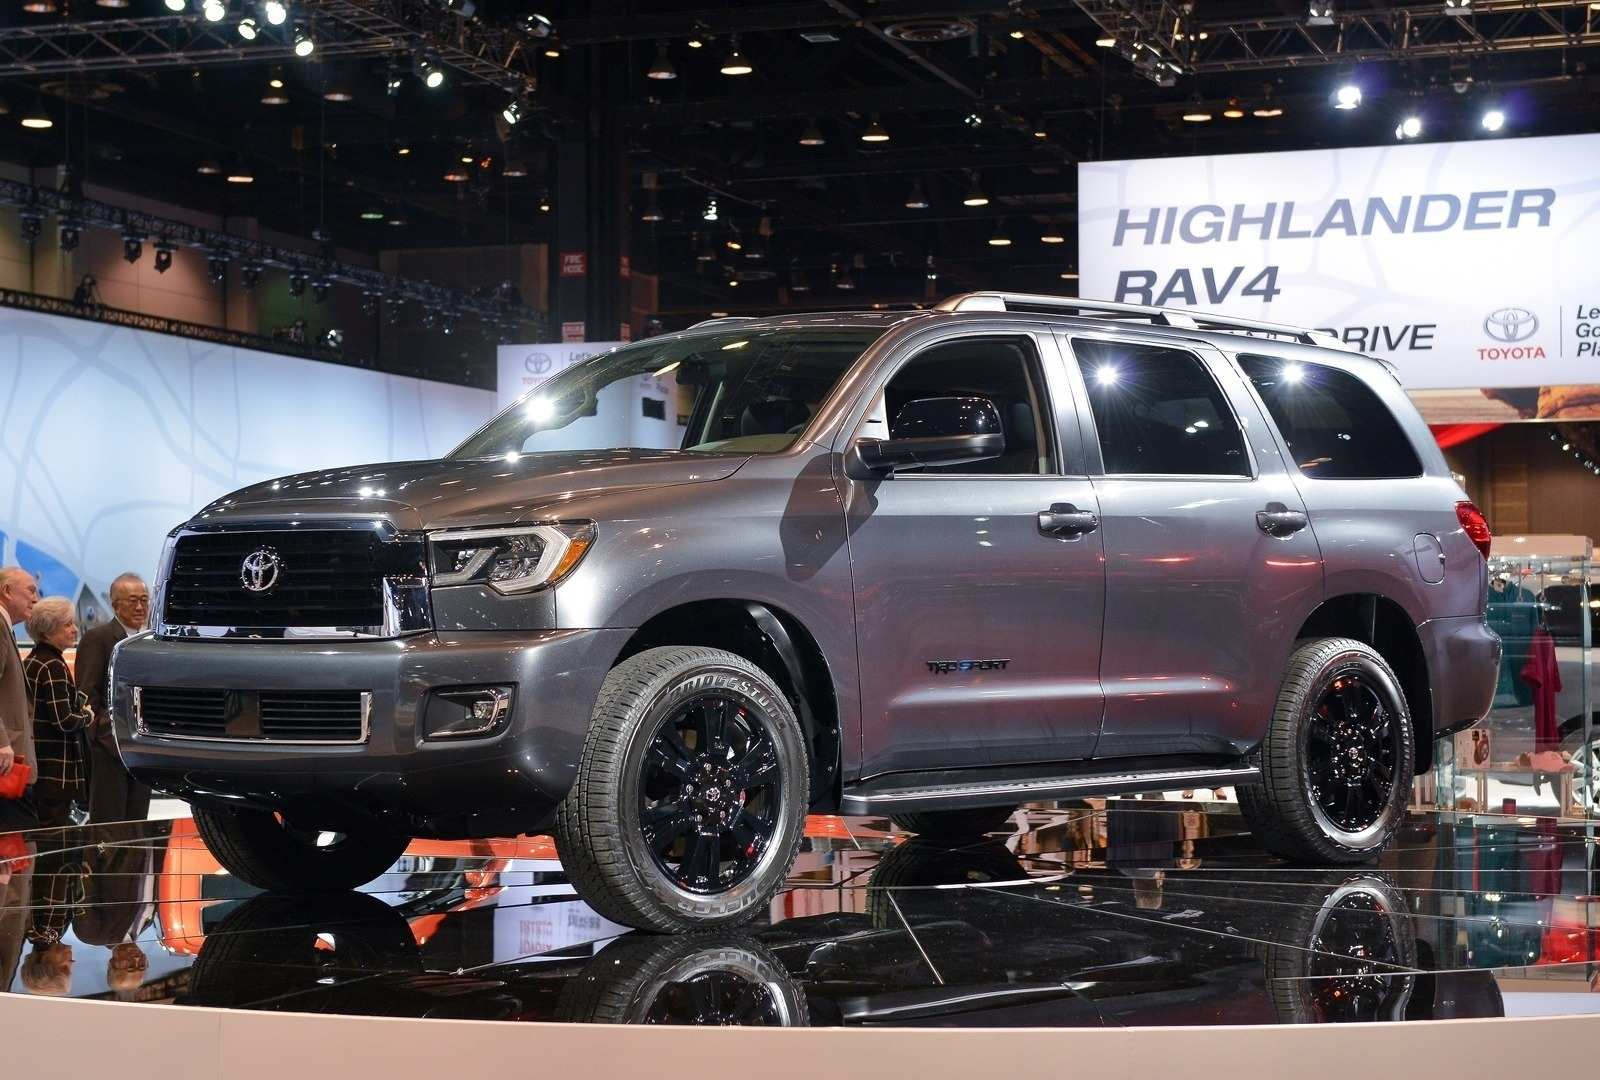 43 A 2020 Toyota Highlander Concept Picture